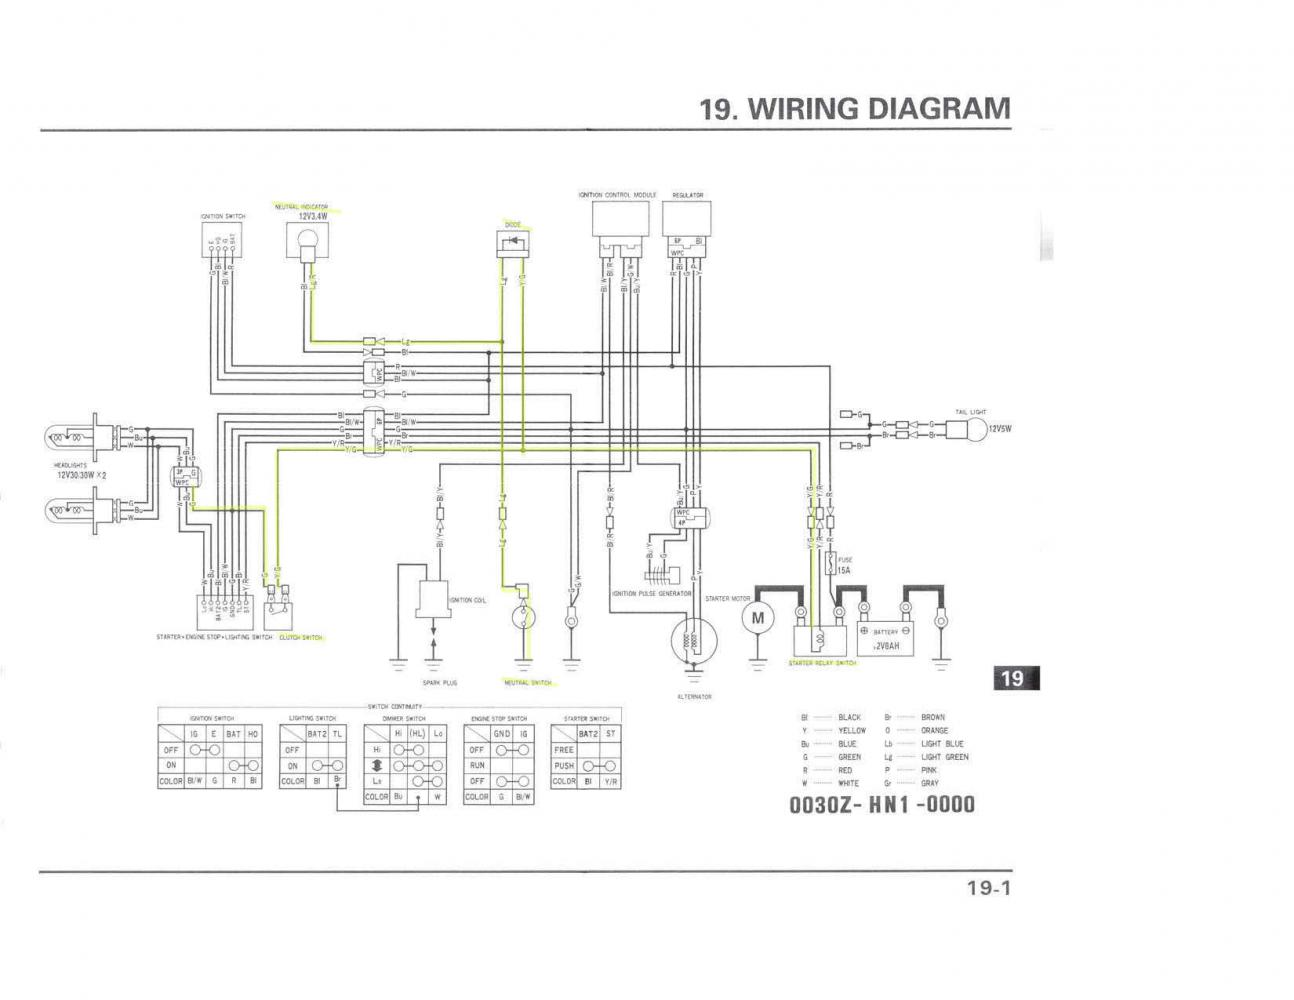 400ex wiring issues page 2 [ 1294 x 1000 Pixel ]